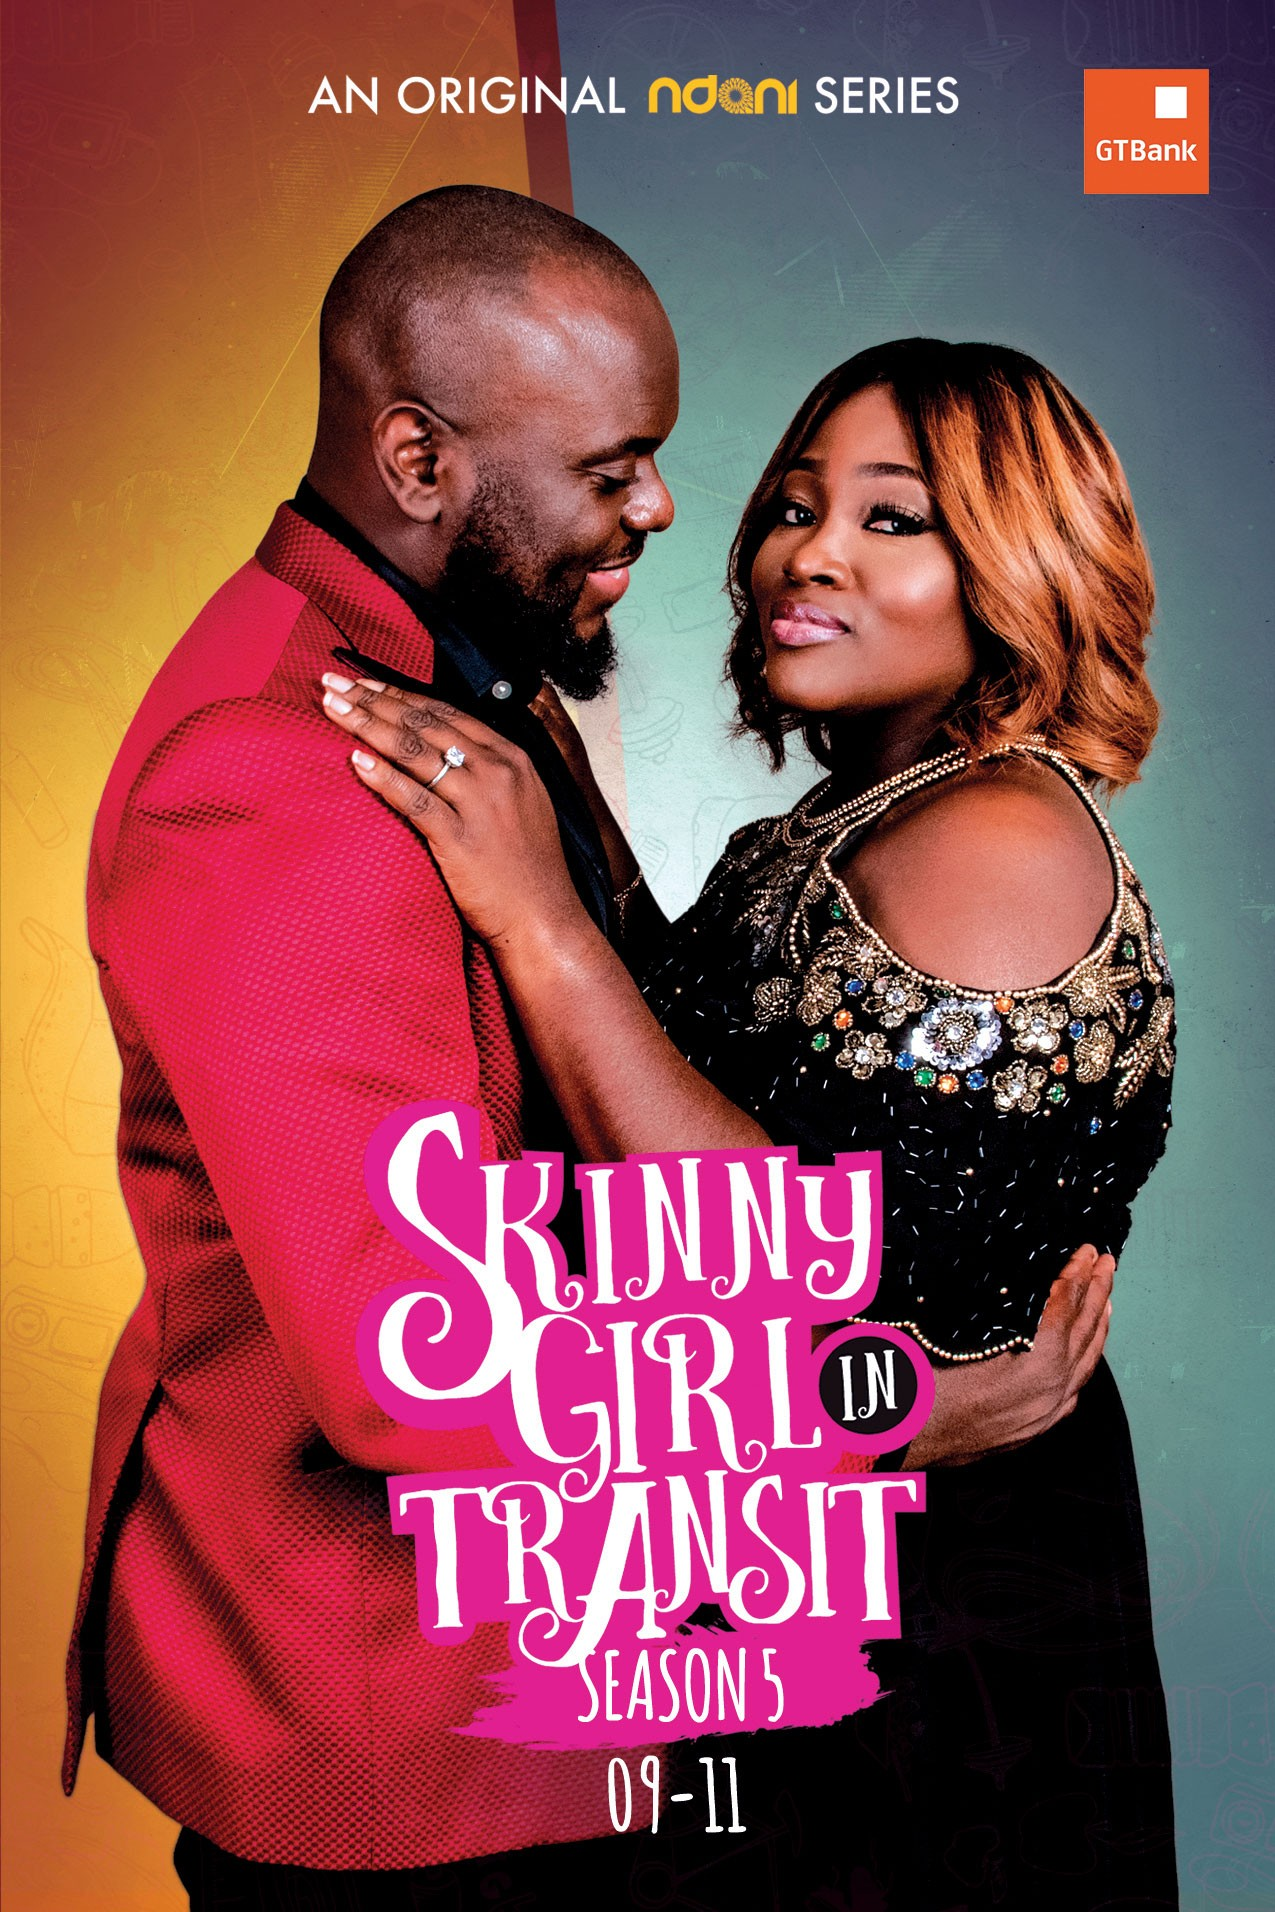 Ndanitv?s Skinny Girl in Transit is back for Season 5 and its lit!